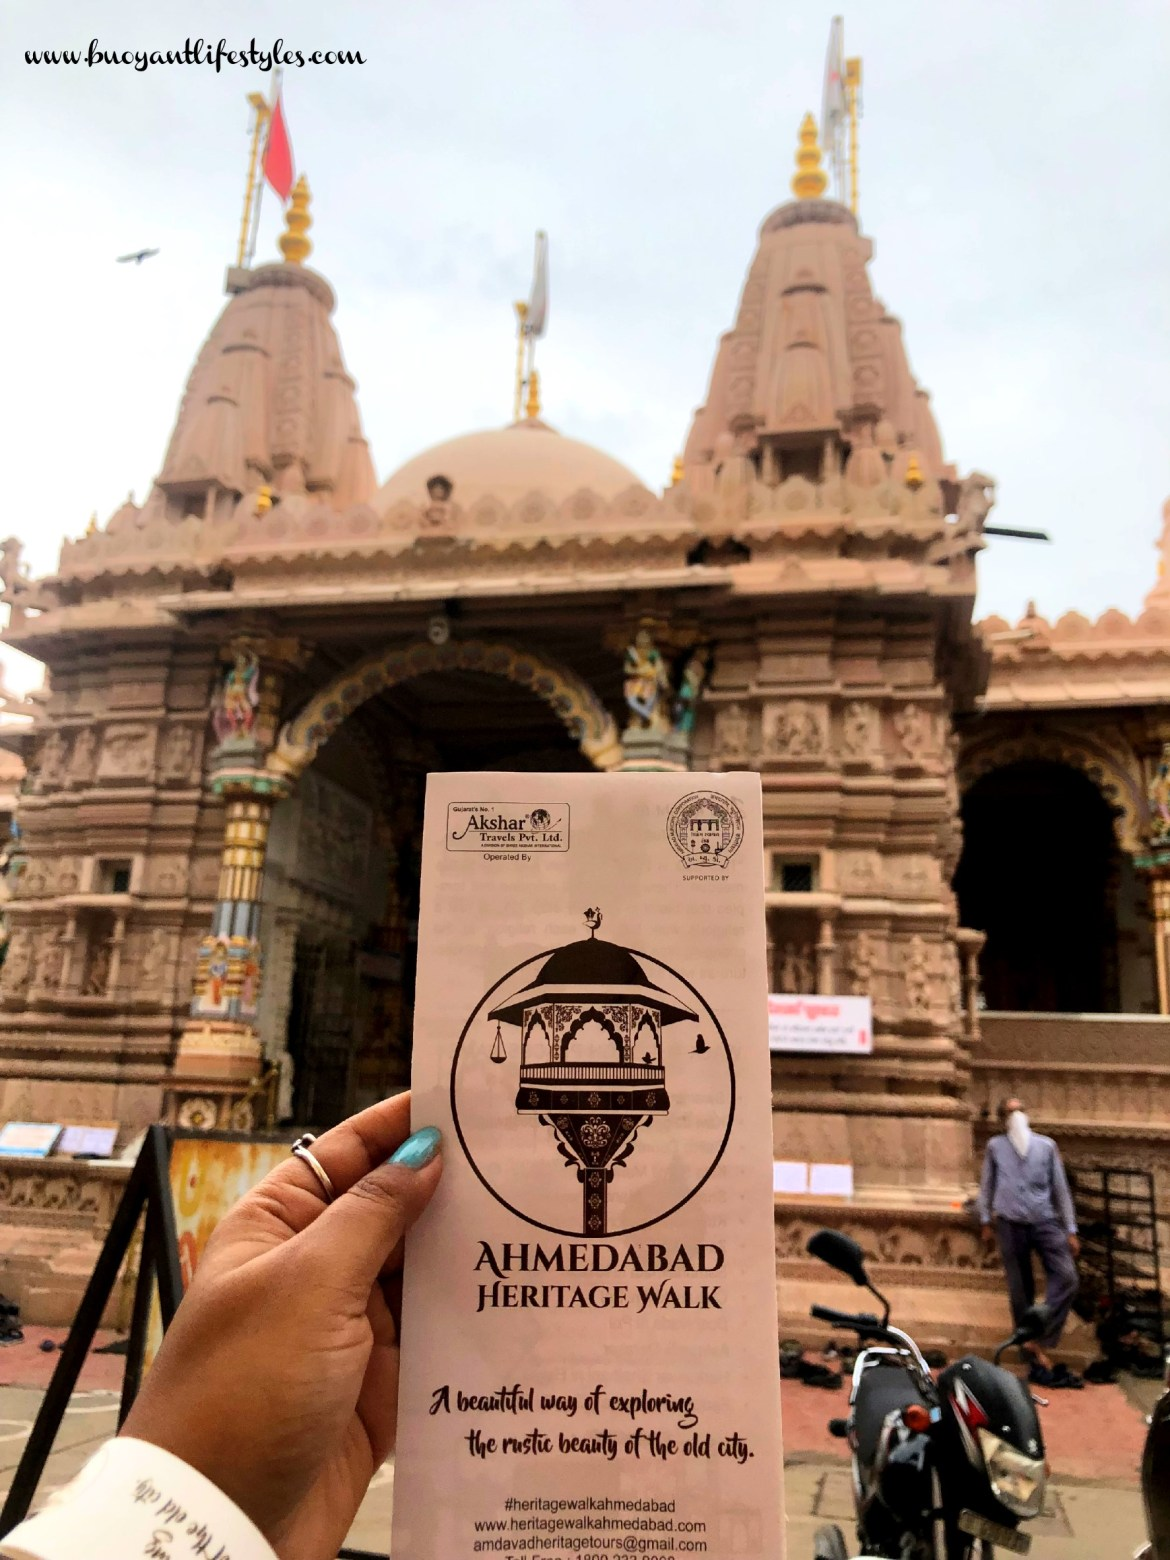 The Ultimate Guide to Ahmedabad Heritage Walk